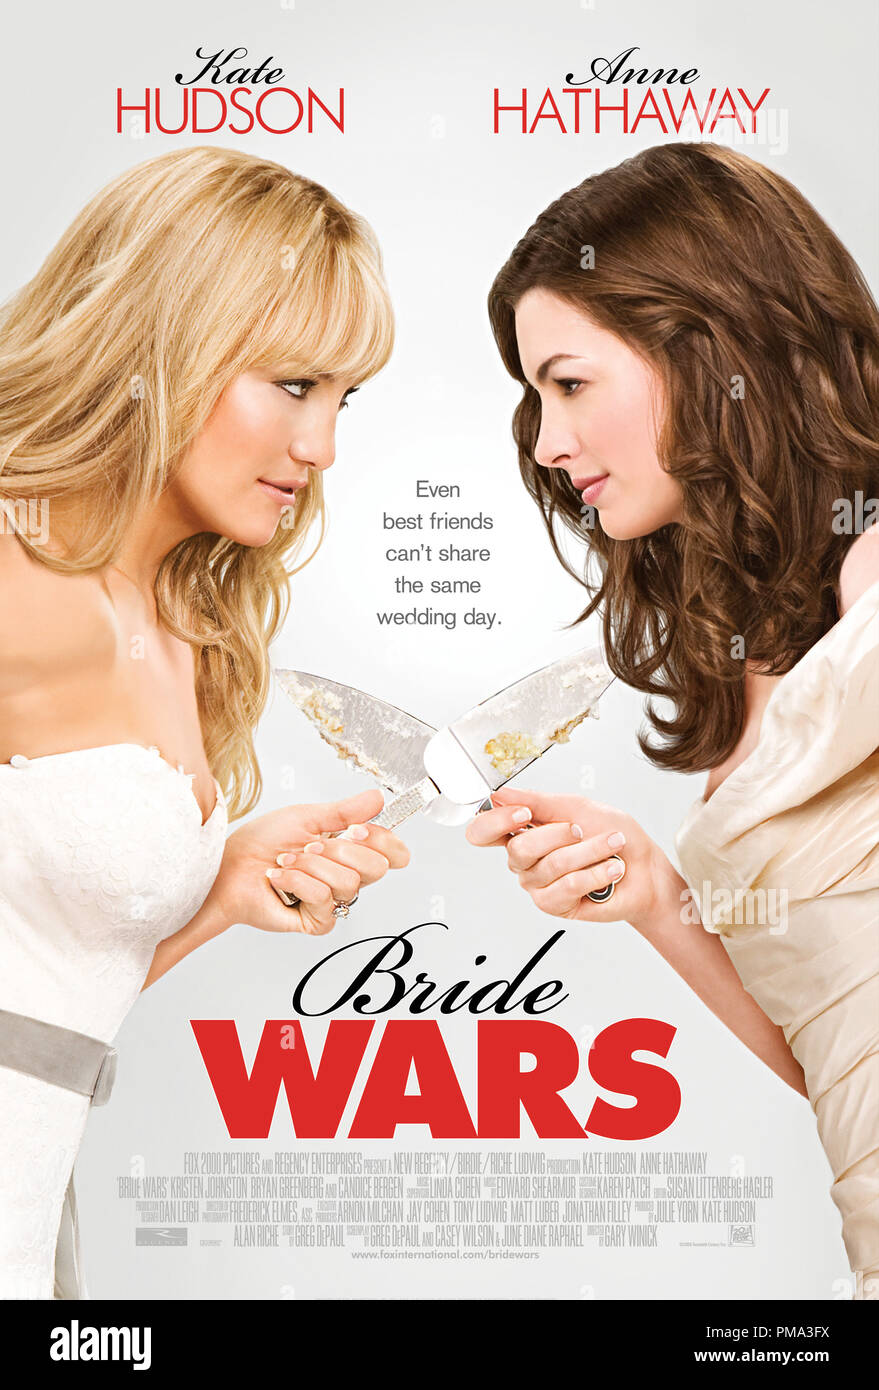 'Bride Wars' Poster Kate Hudson, Anne Hathaway 2009 20th Century Fox Photo credit: Claire Folger - Stock Image